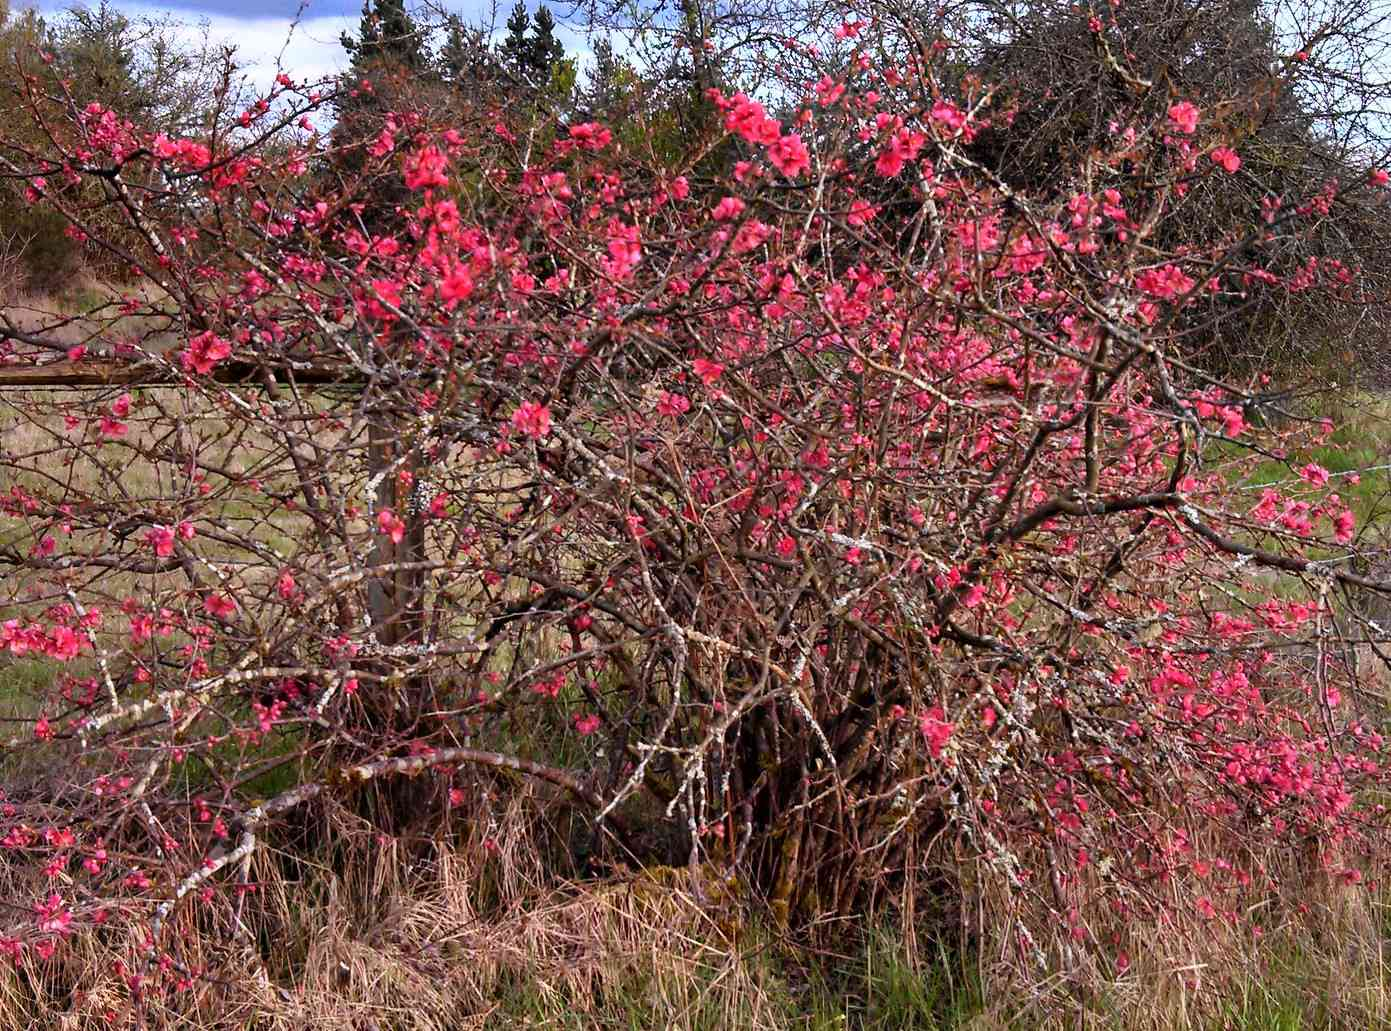 A tangled, woody bush with hundreds of small pink blossoms sits in a field